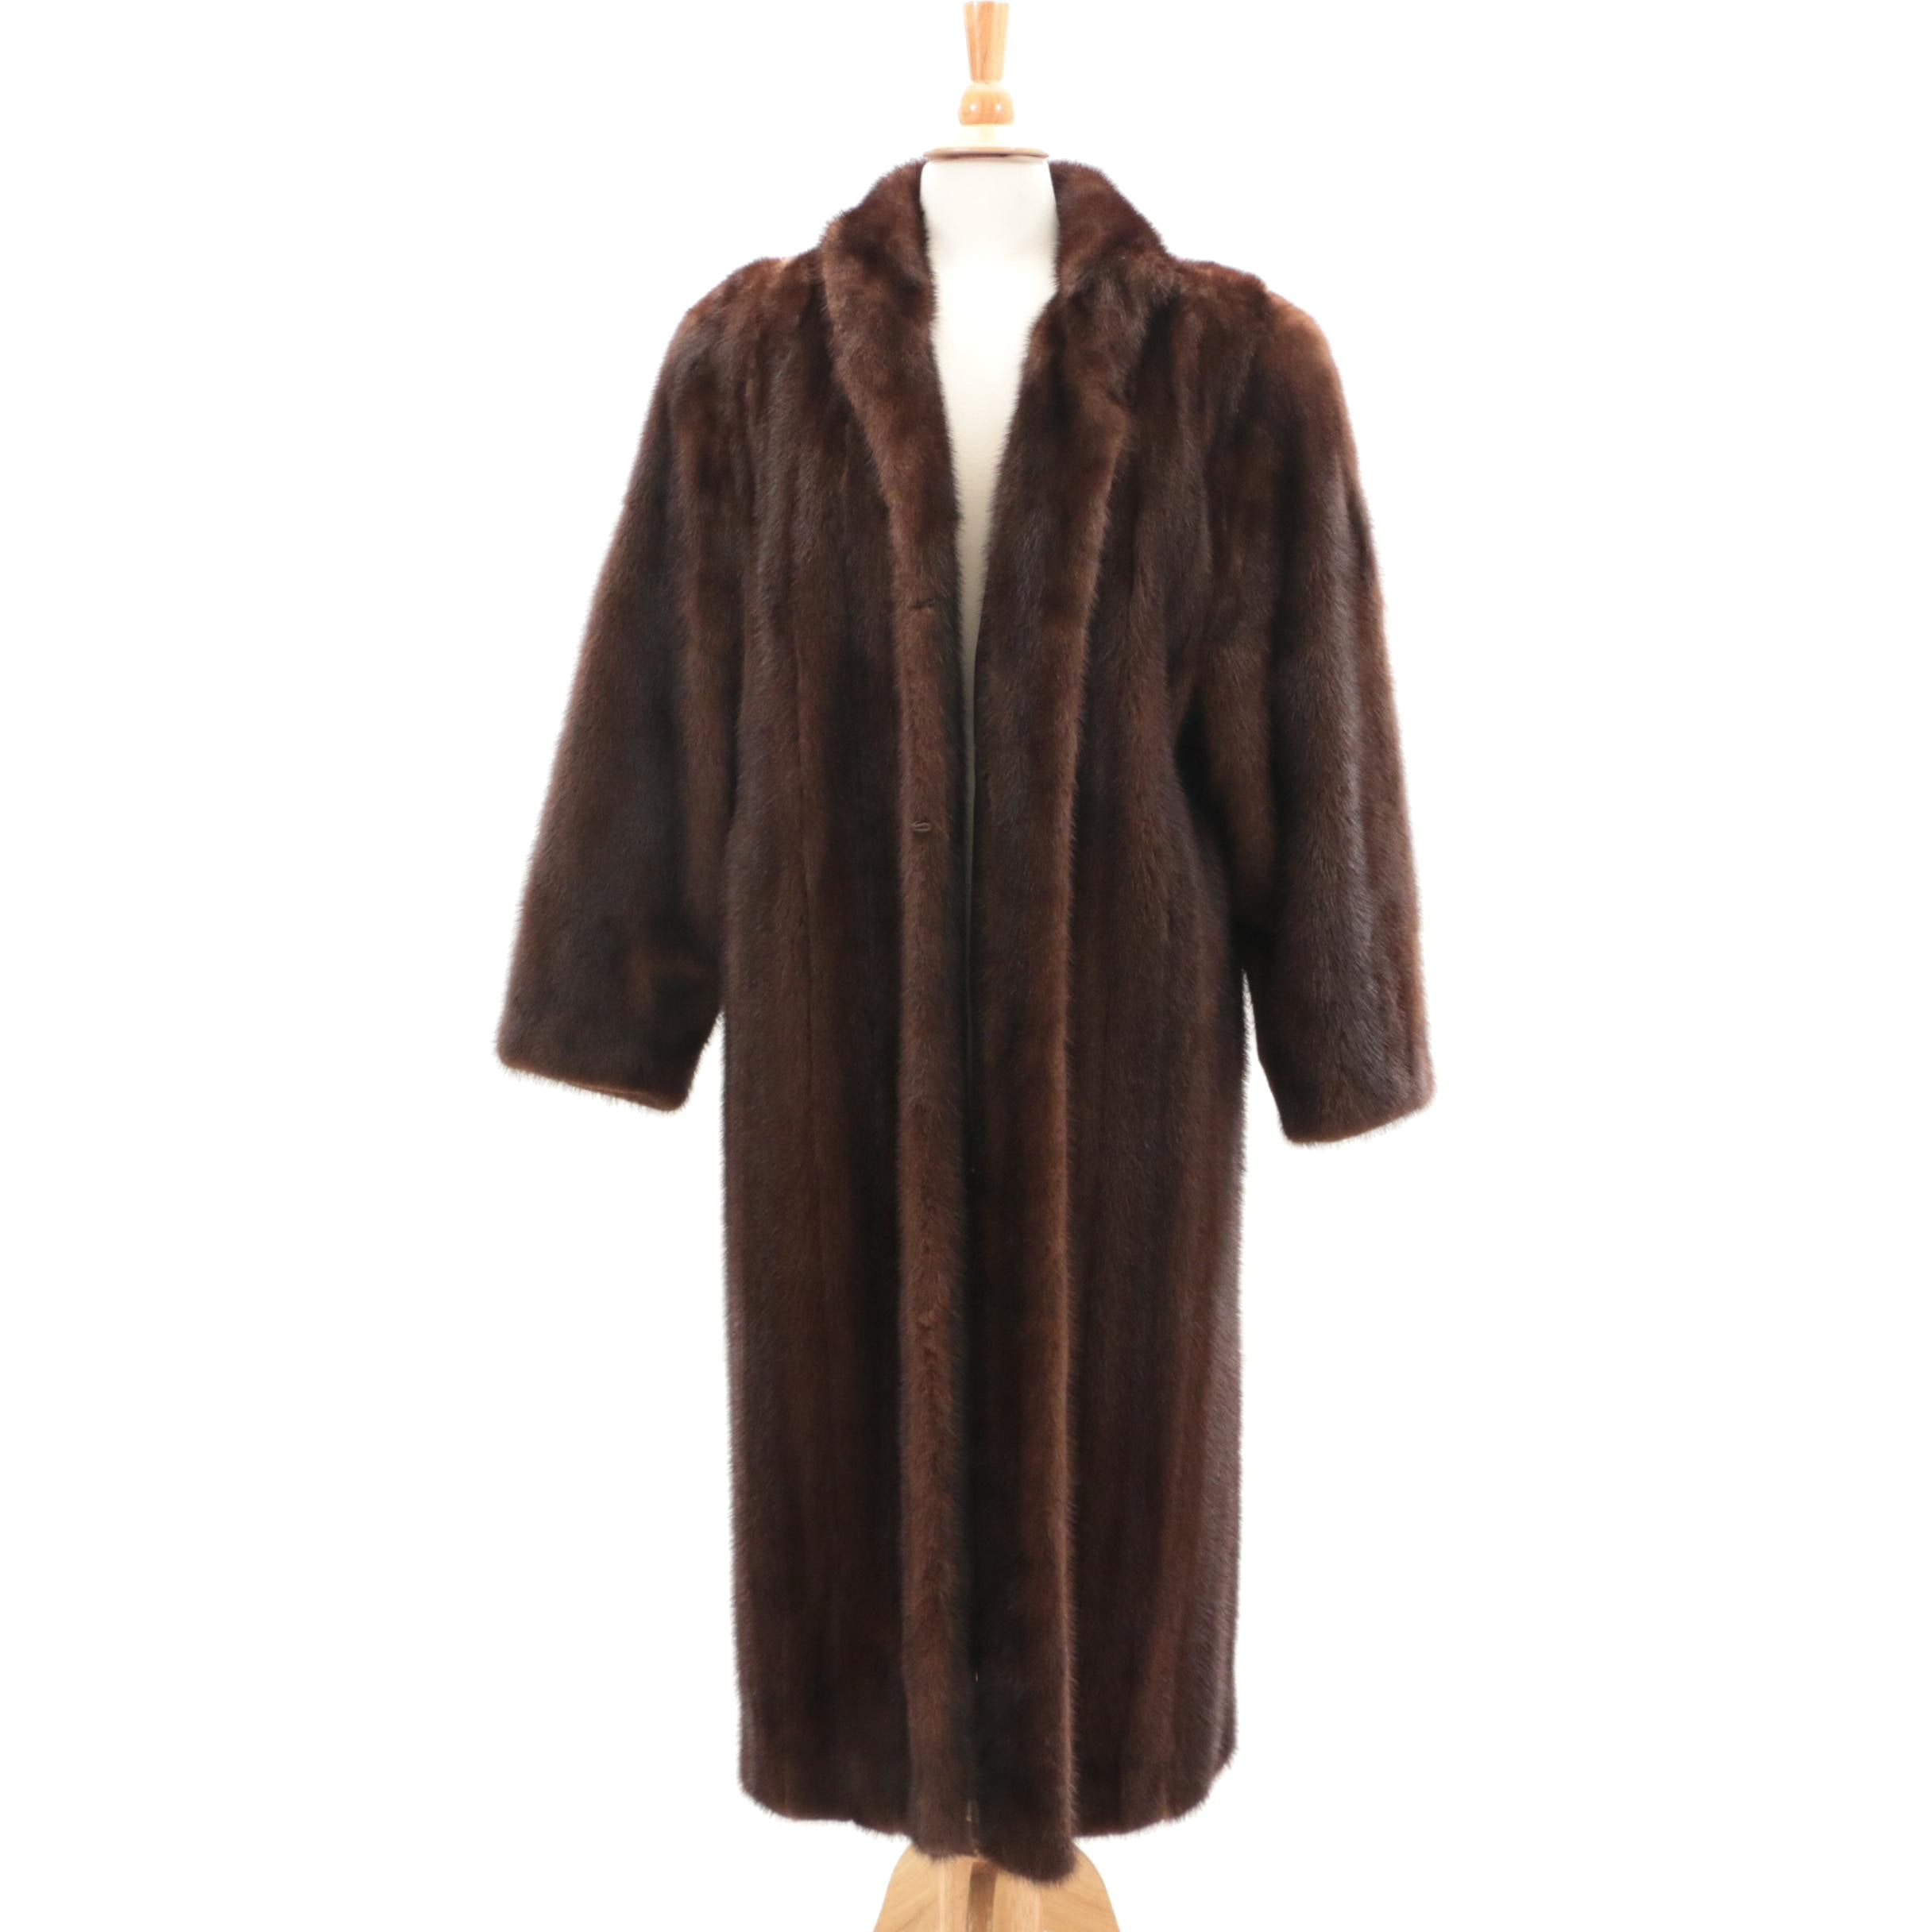 Dark Brown Mink Fur Coat, Vintage